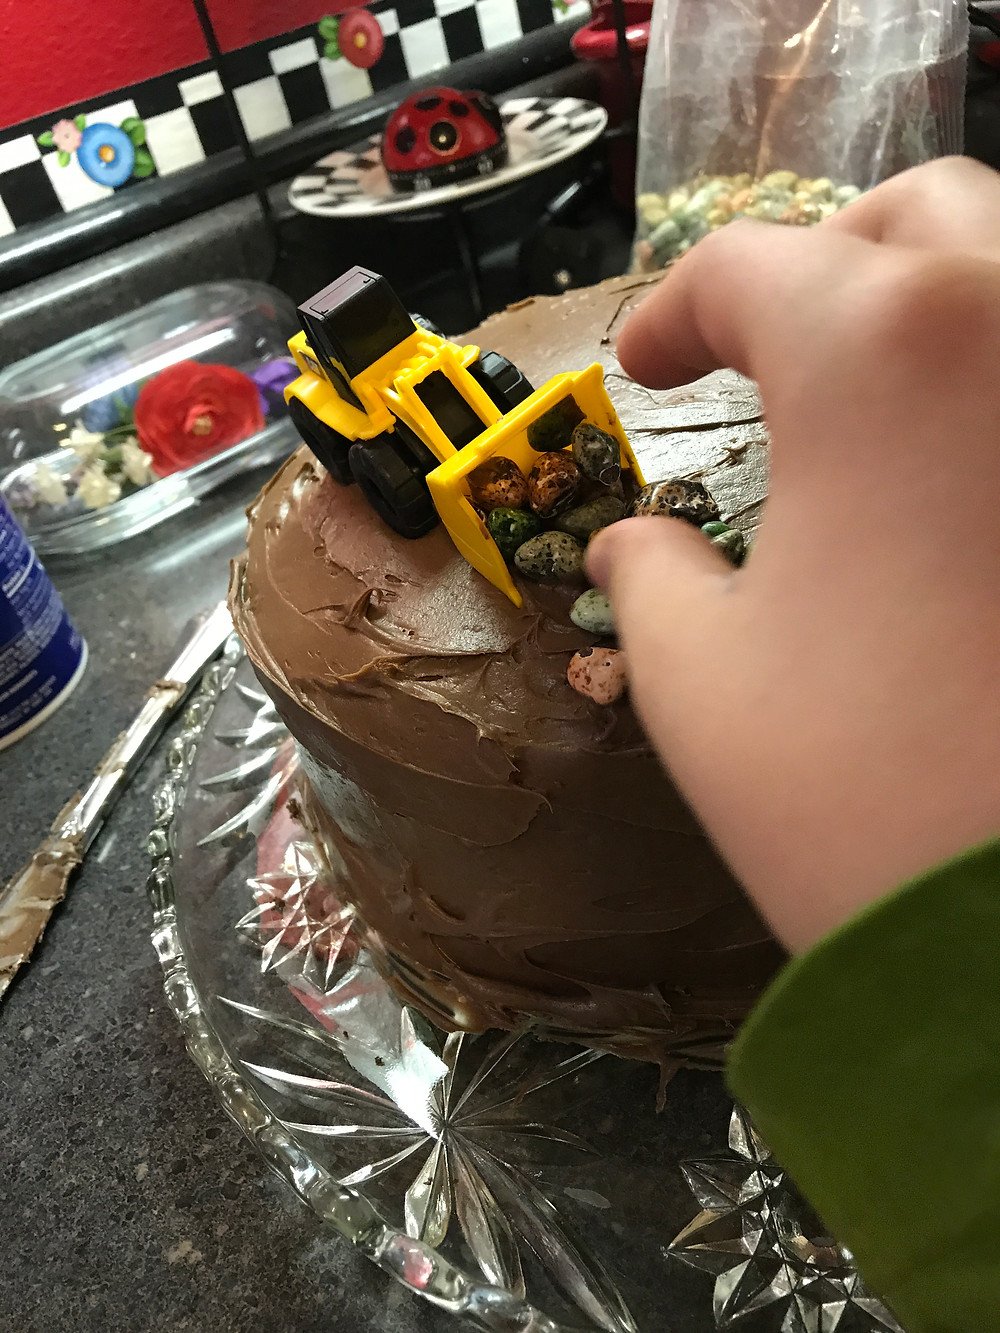 Weston's hand putting a vehicle and rocks on the cake top / Make a Construction Site Cake! / www.HoneycombOasis.com